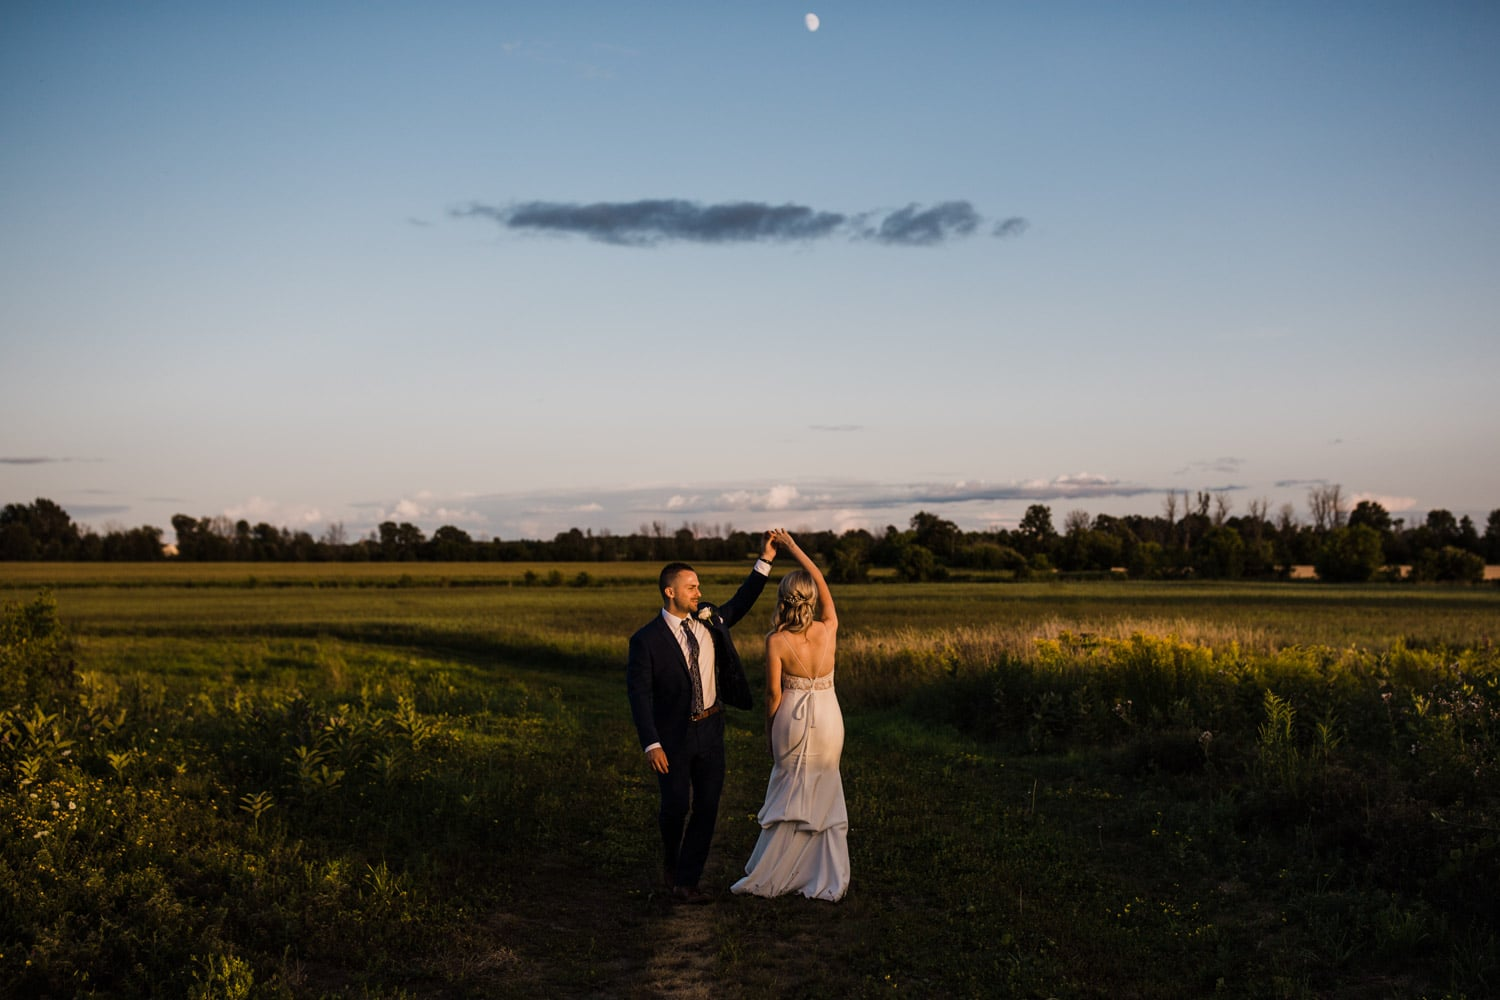 bride and groom dance outside at sunset - strathmere wedding